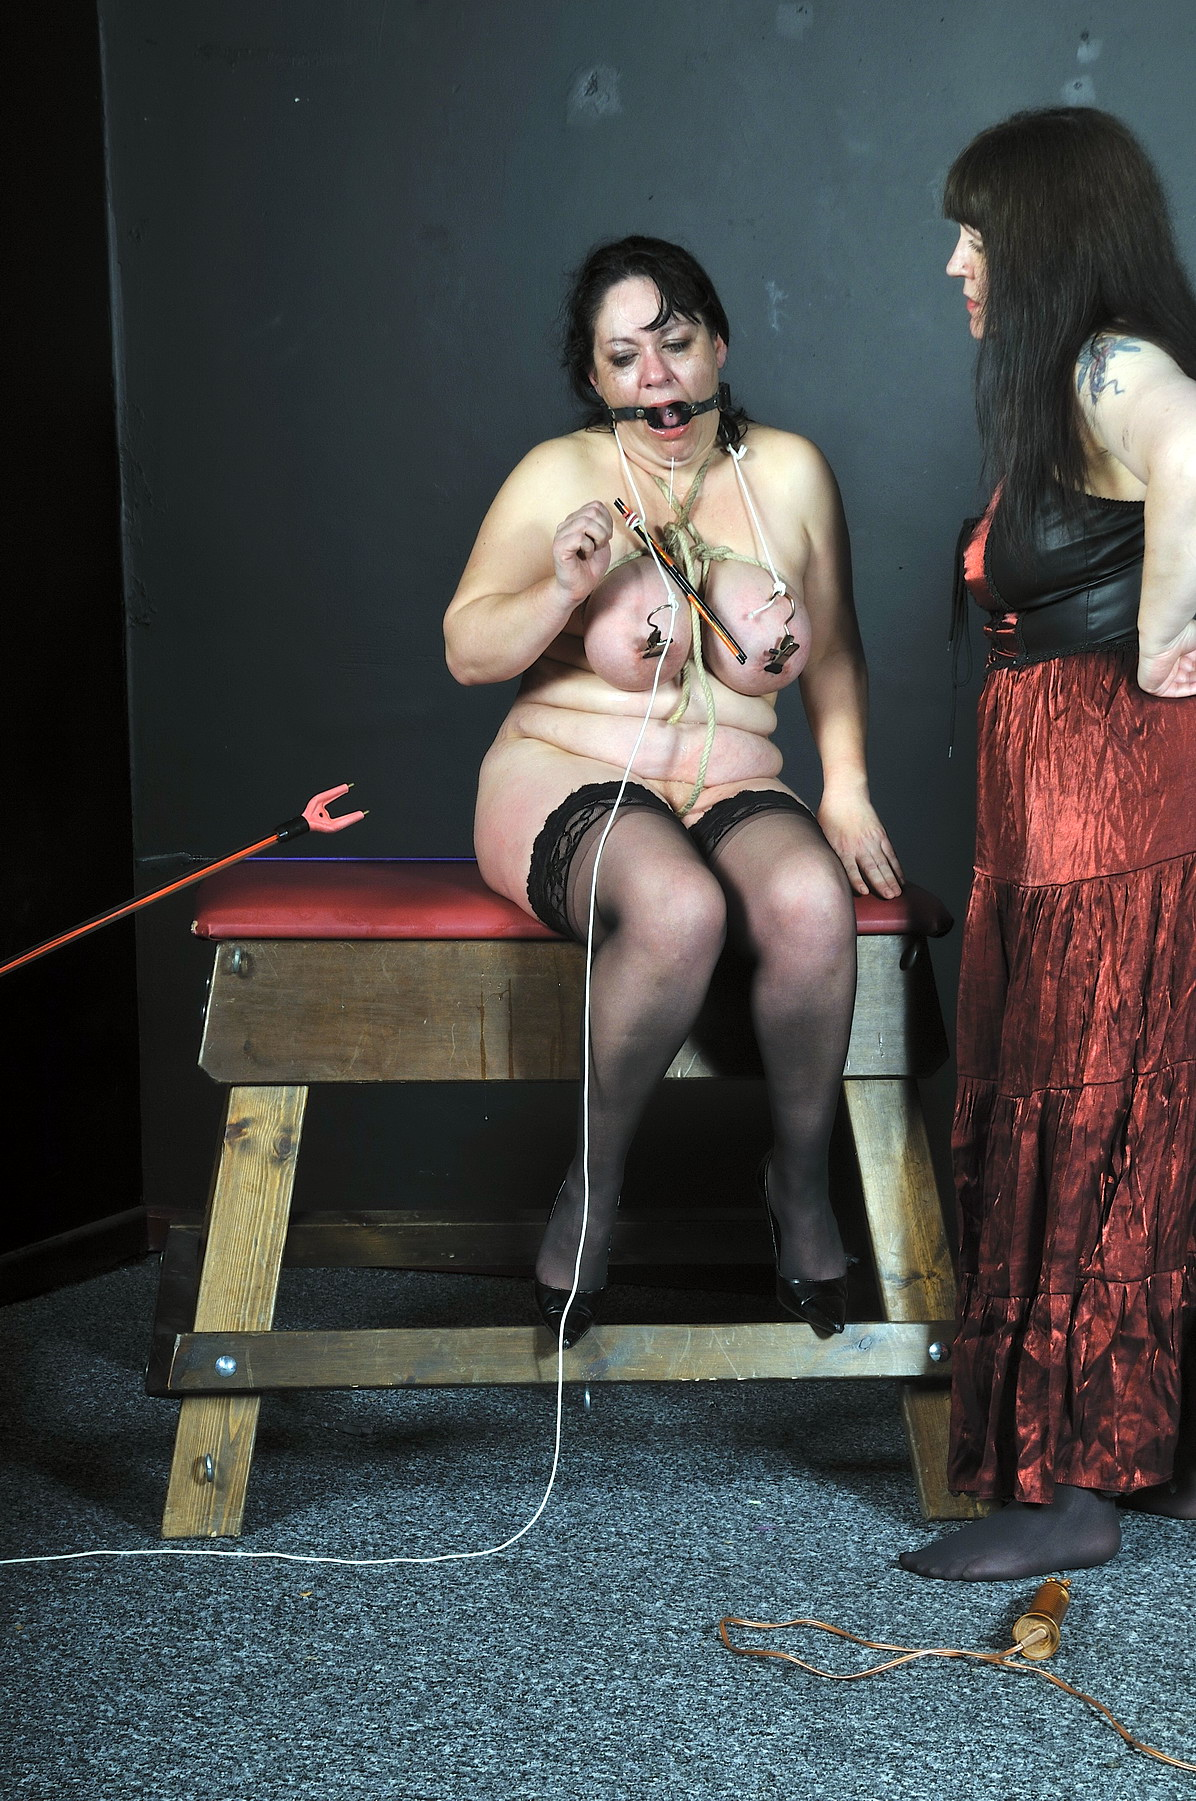 image Dominatrix uses her electro wand on her slave